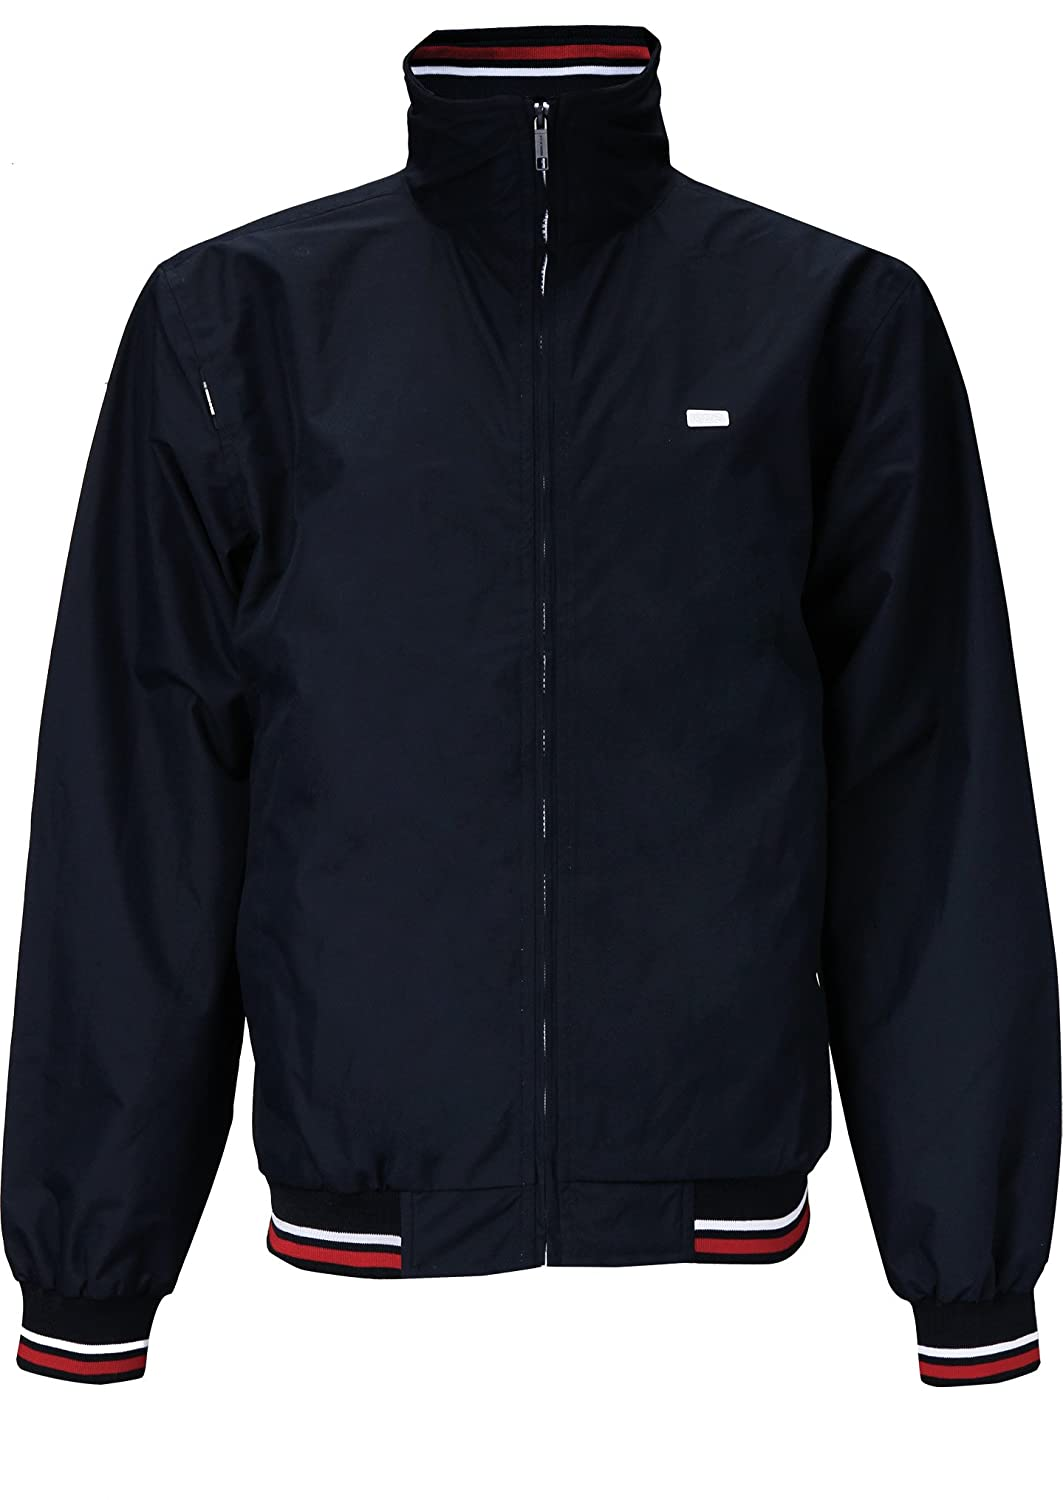 2117?of Sweden Tor? Wind Jacket Stretch Navy L 50/52